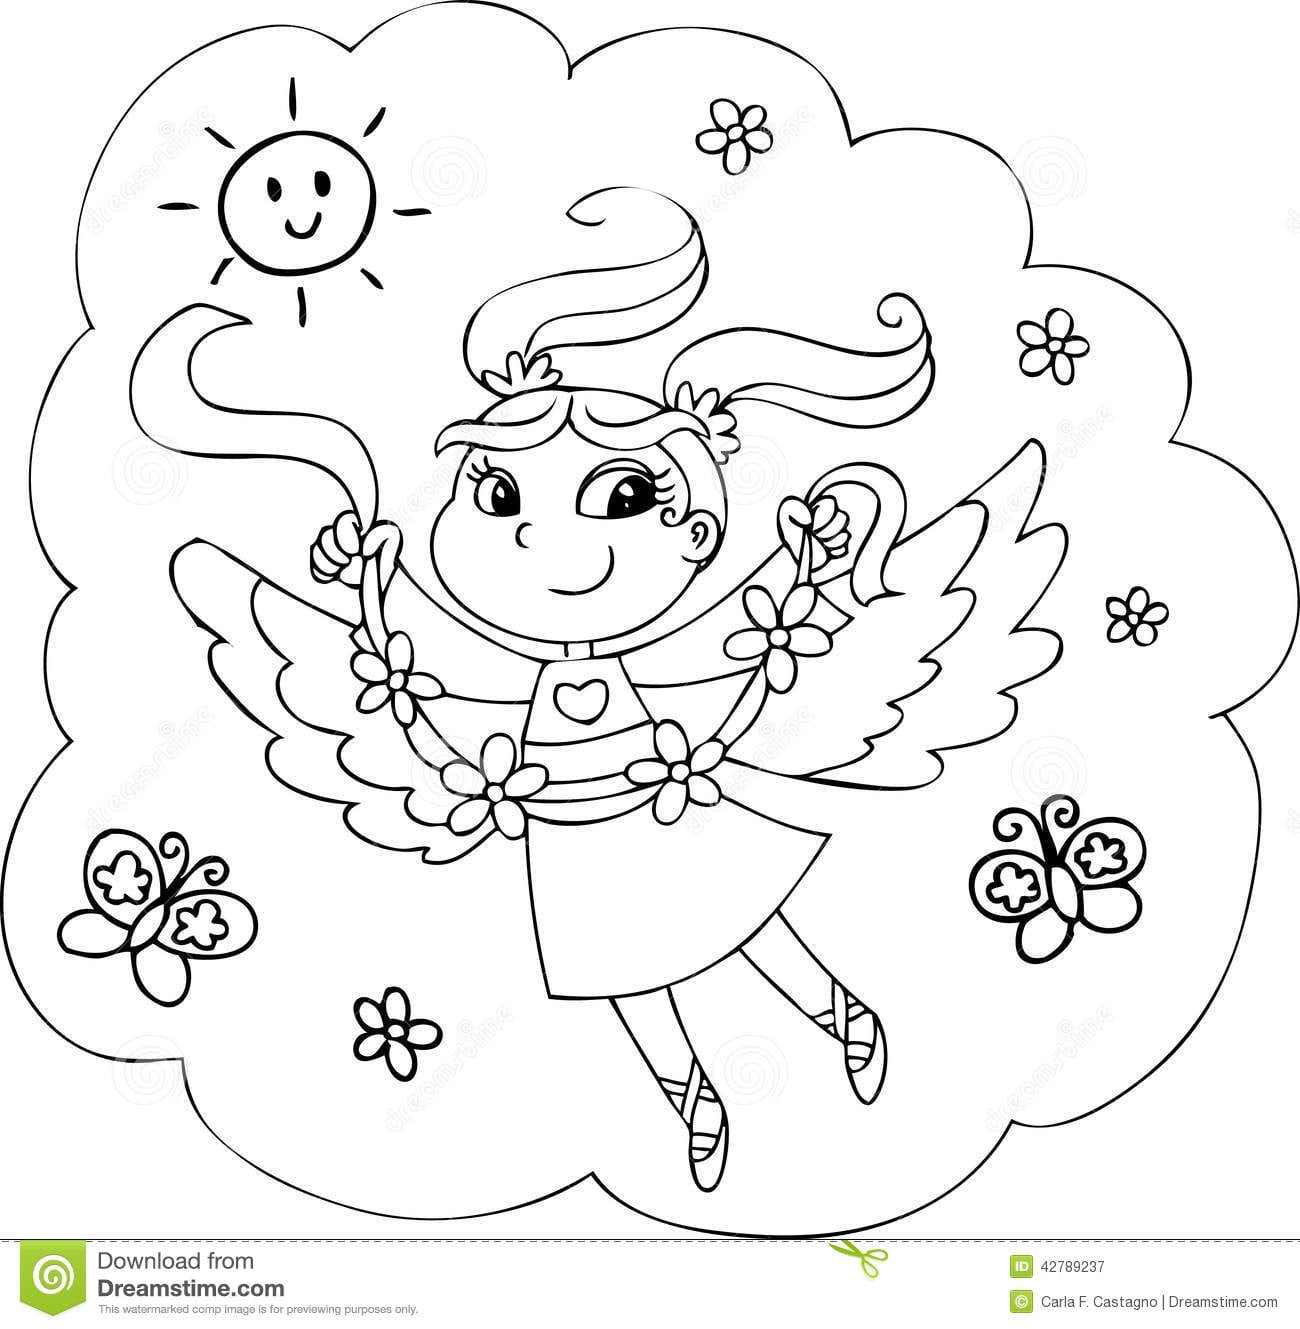 rainbow magic fairy coloring pages rainbow magic fairy coloring pages coloring home magic rainbow fairy coloring pages